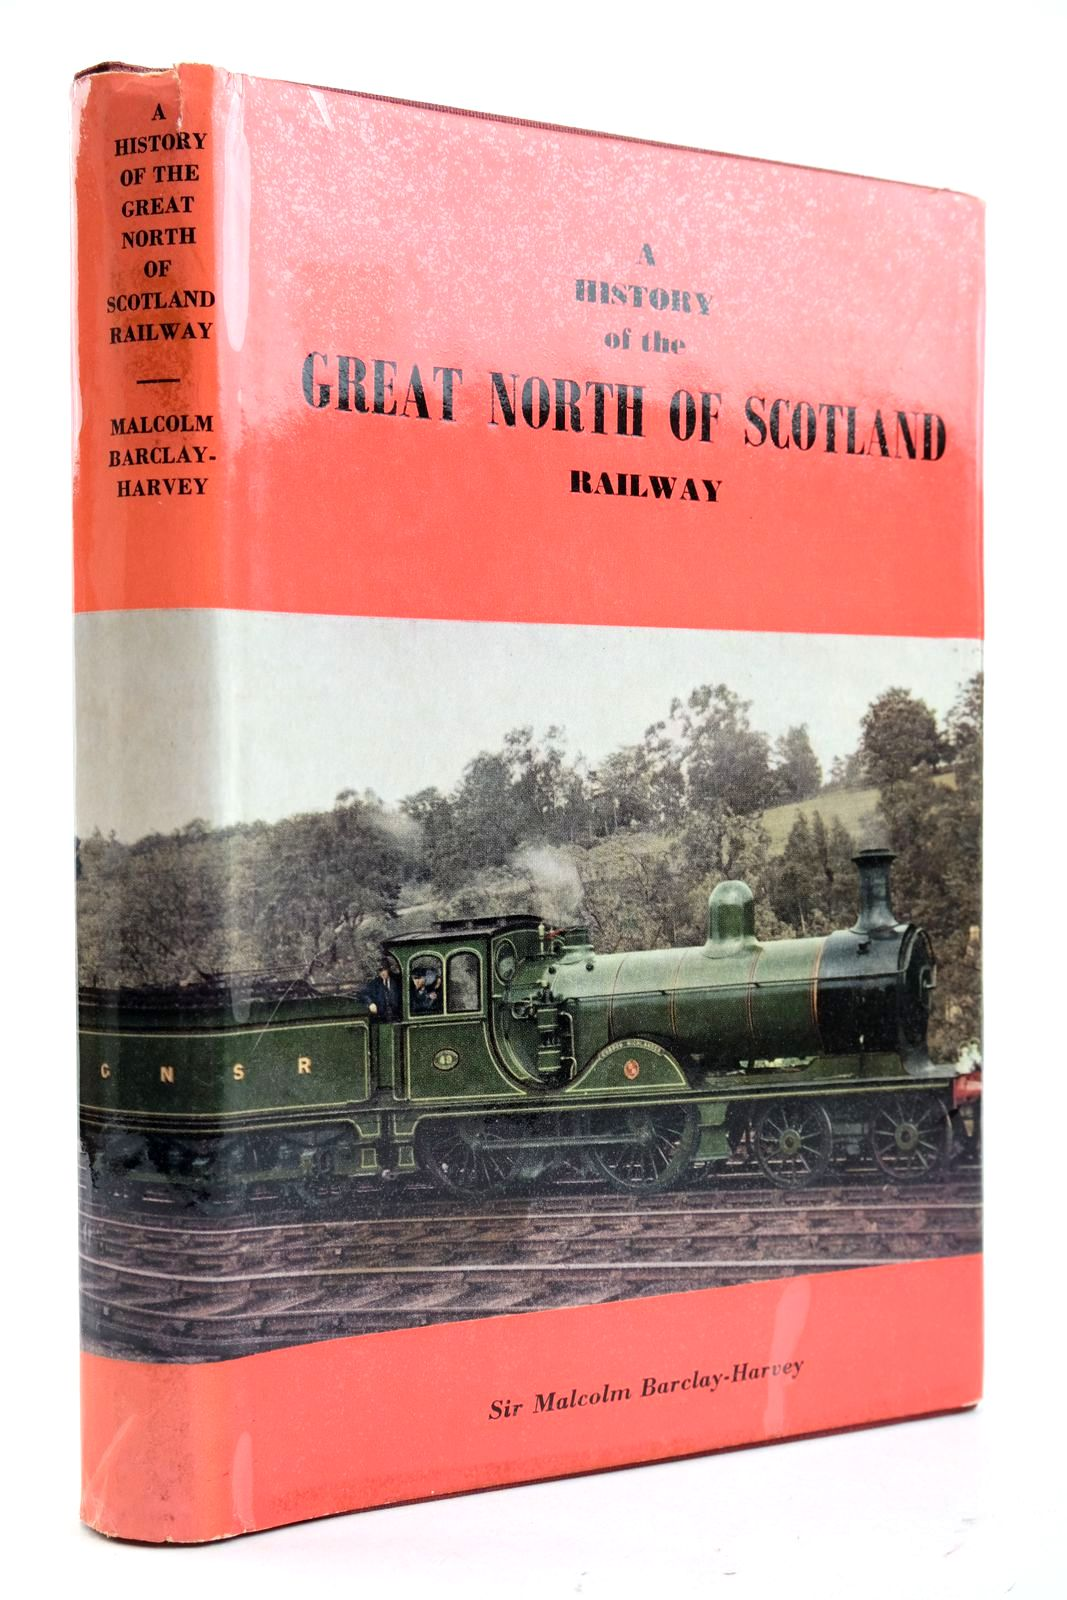 Photo of A HISTORY OF THE GREAT NORTH OF SCOTLAND RAILWAY written by Barclay-Harvey, Malcolm published by Locomotive Publishing Co. Ltd. (STOCK CODE: 2133054)  for sale by Stella & Rose's Books